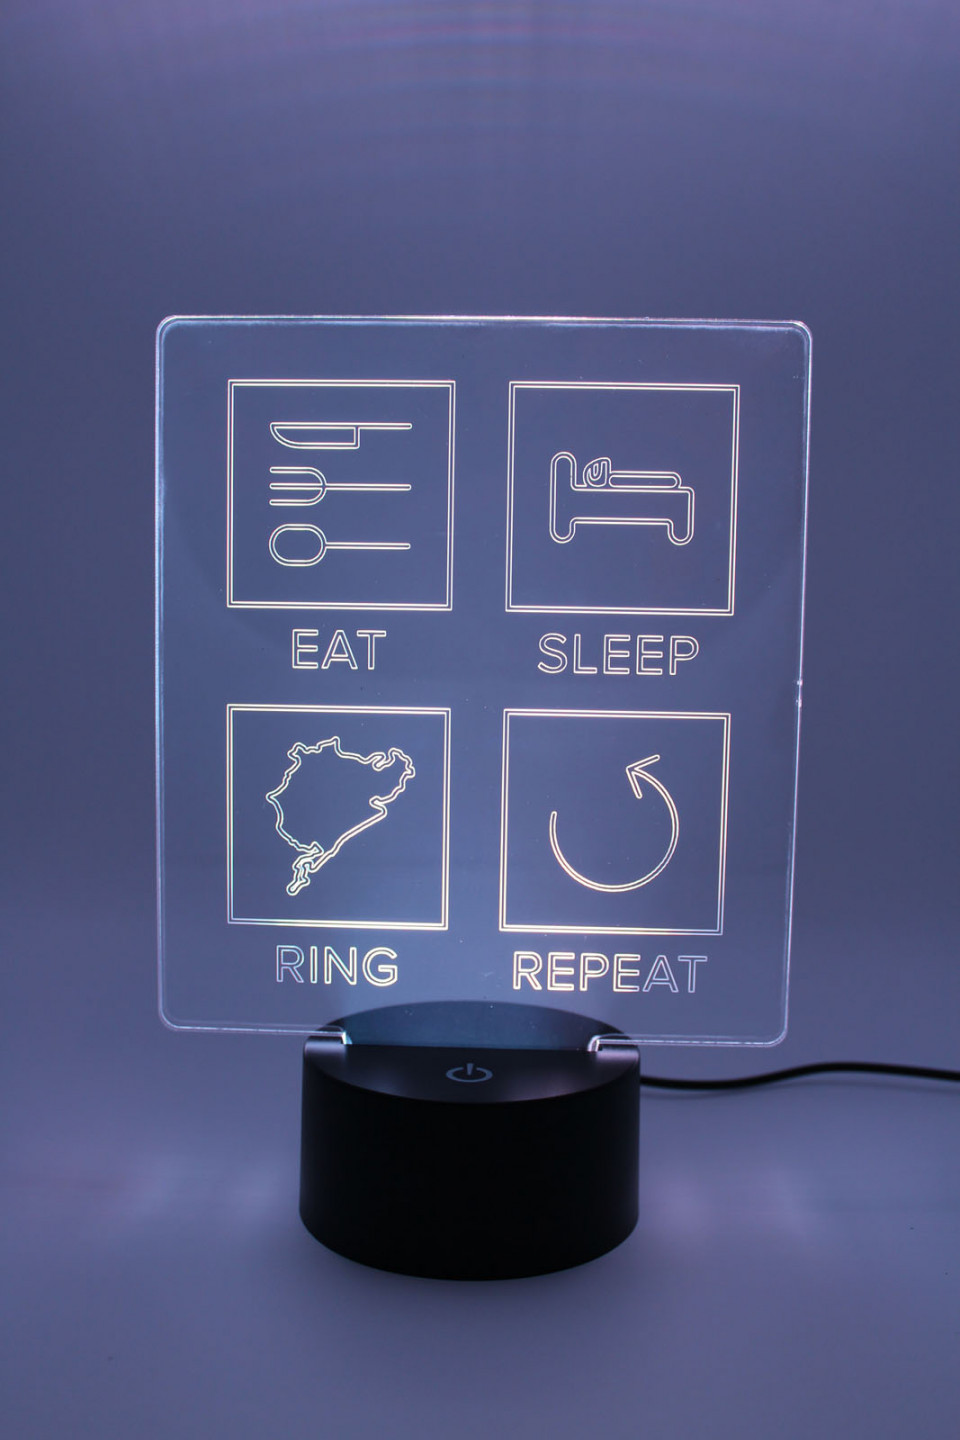 Led Linienle led le eat ring repeat linien